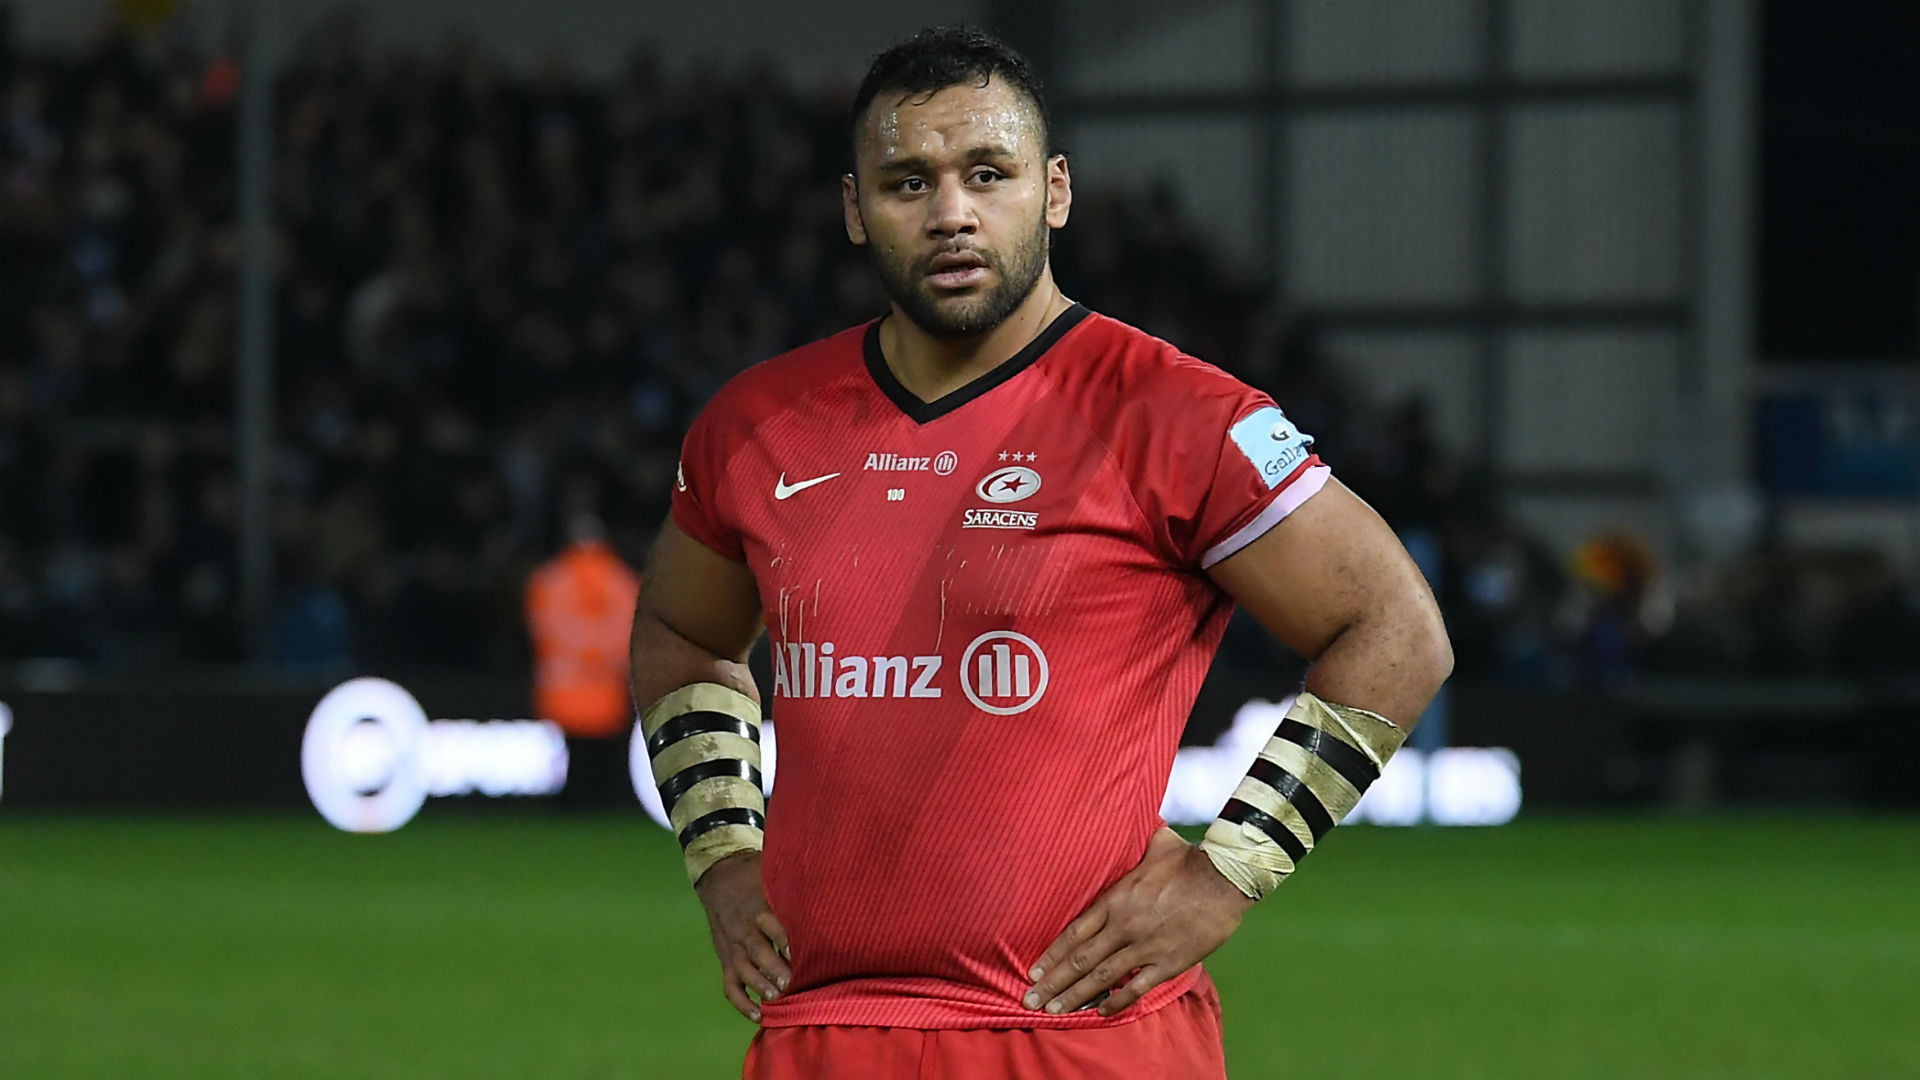 England suffer Six Nations blow with confirmation of broken arm for Billy Vunipola